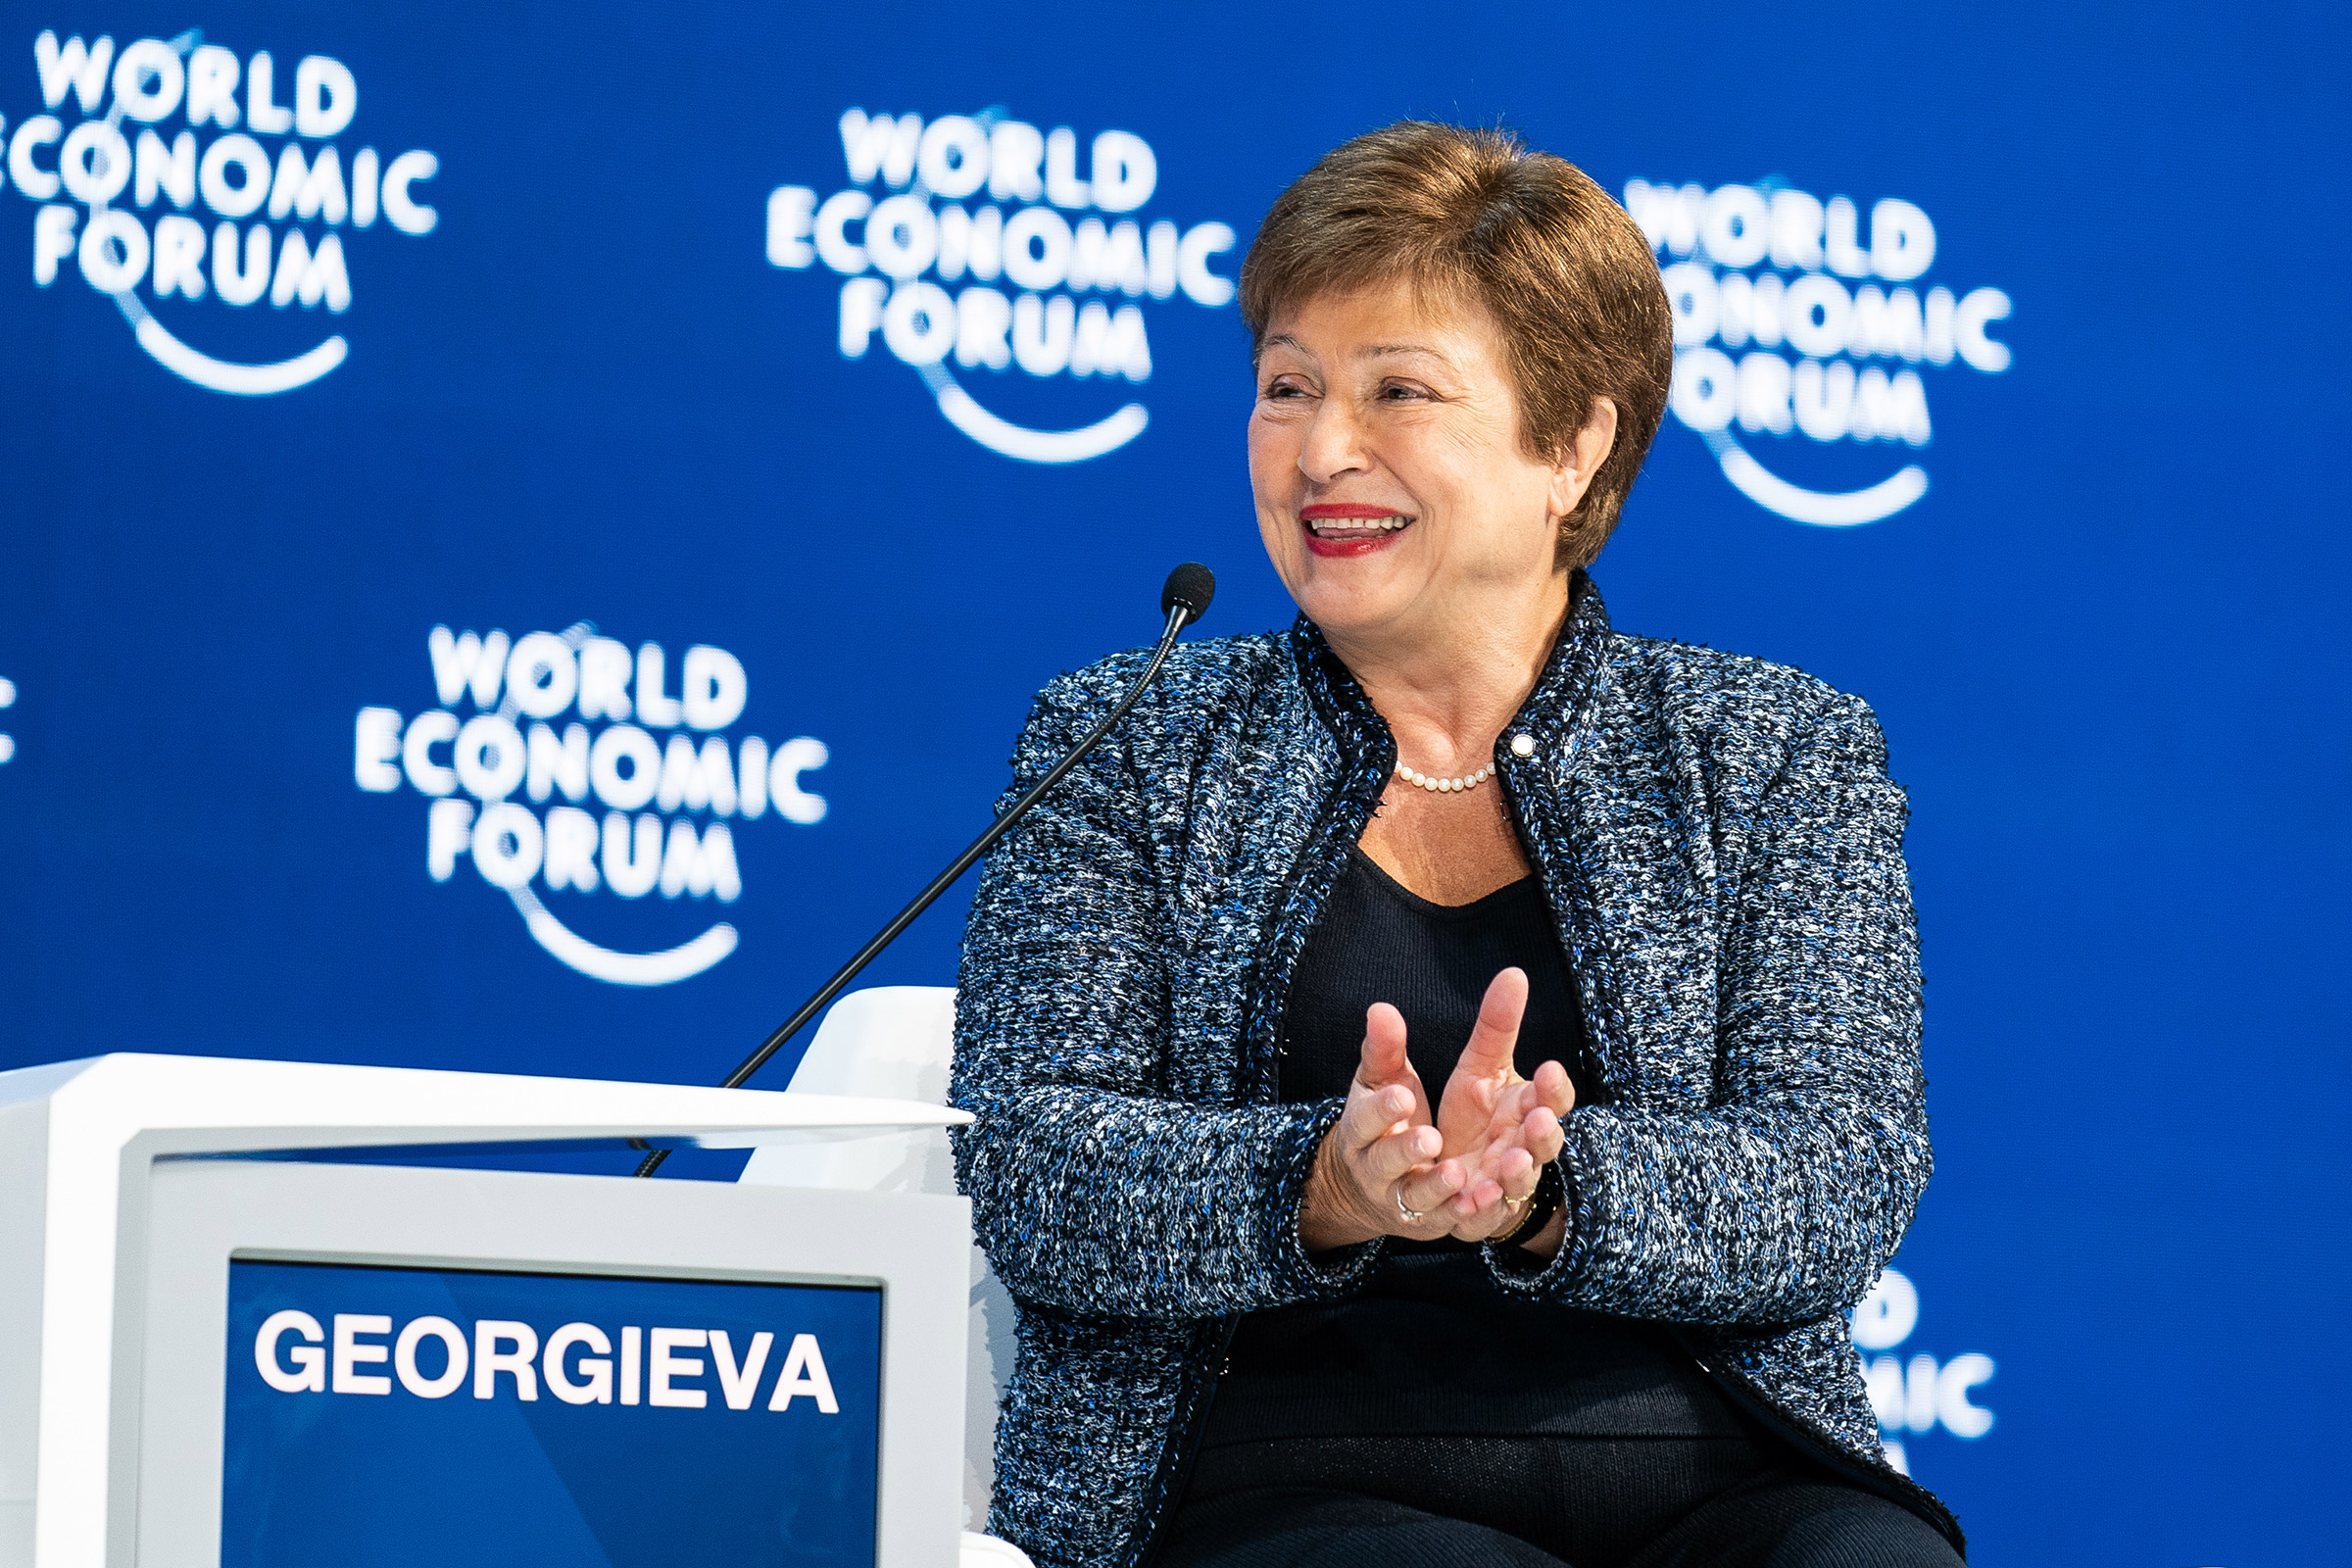 Georgieva took office as managing director of the International Monetary Fund in October